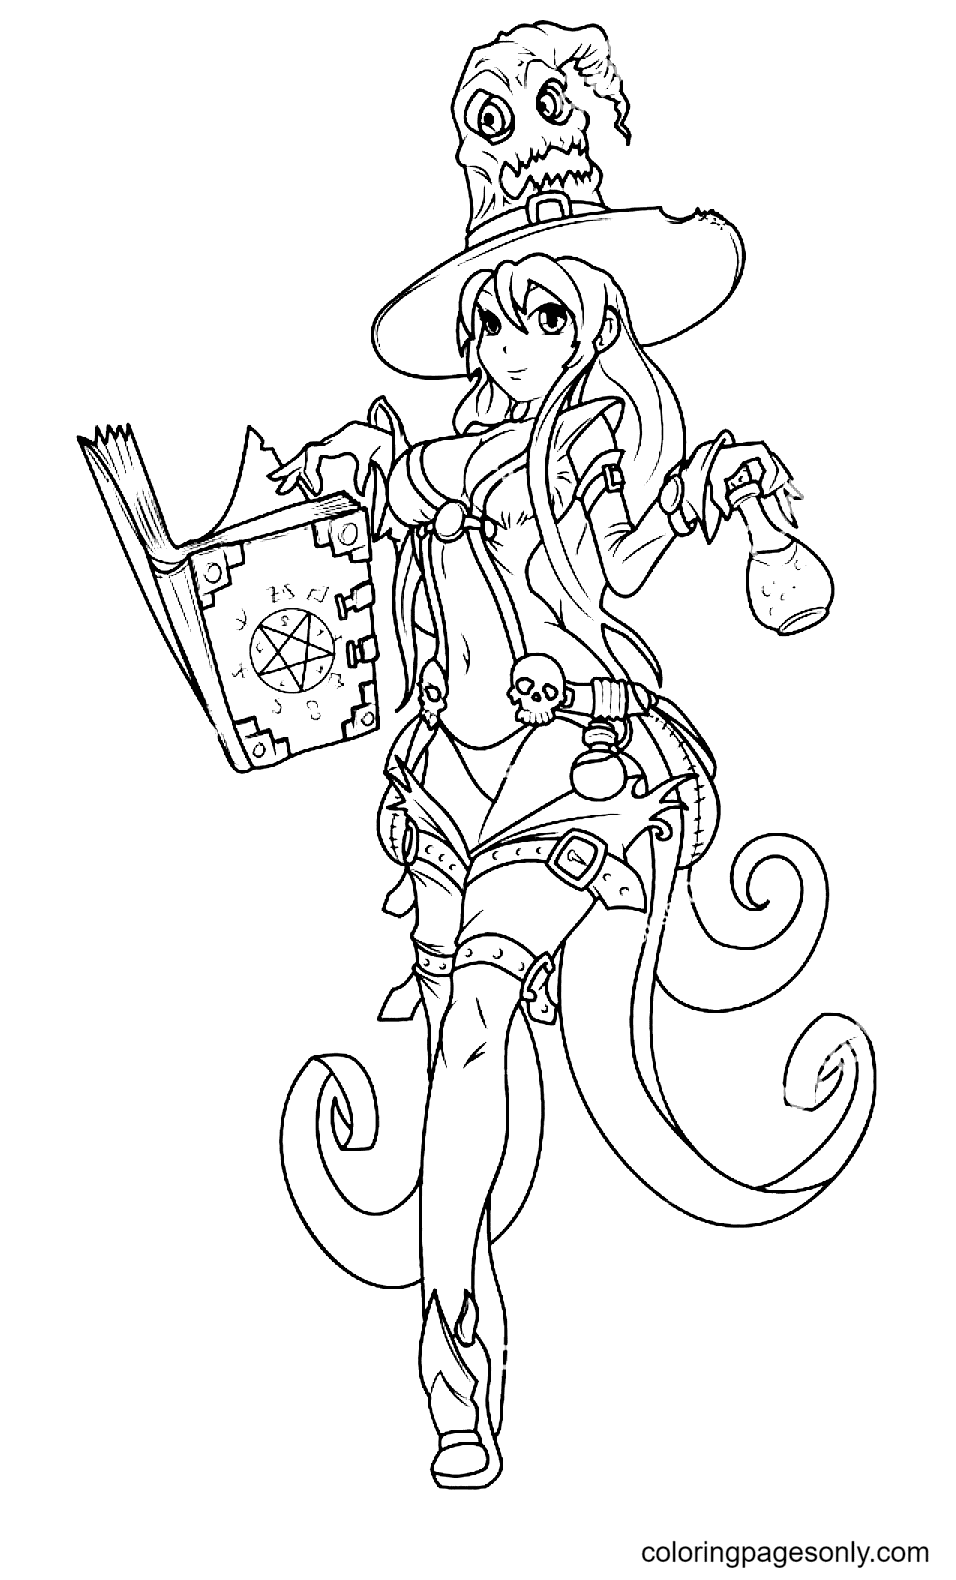 Cute Witch Holding a Spell Book Coloring Page